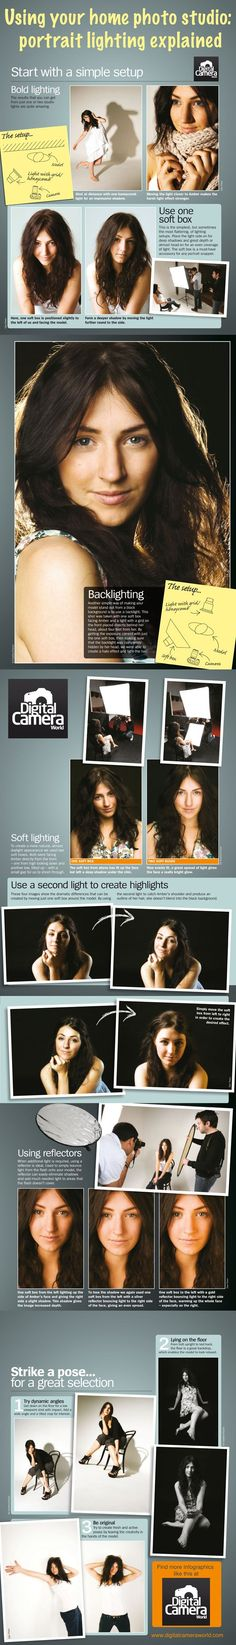 Free portrait lighting cheat sheet